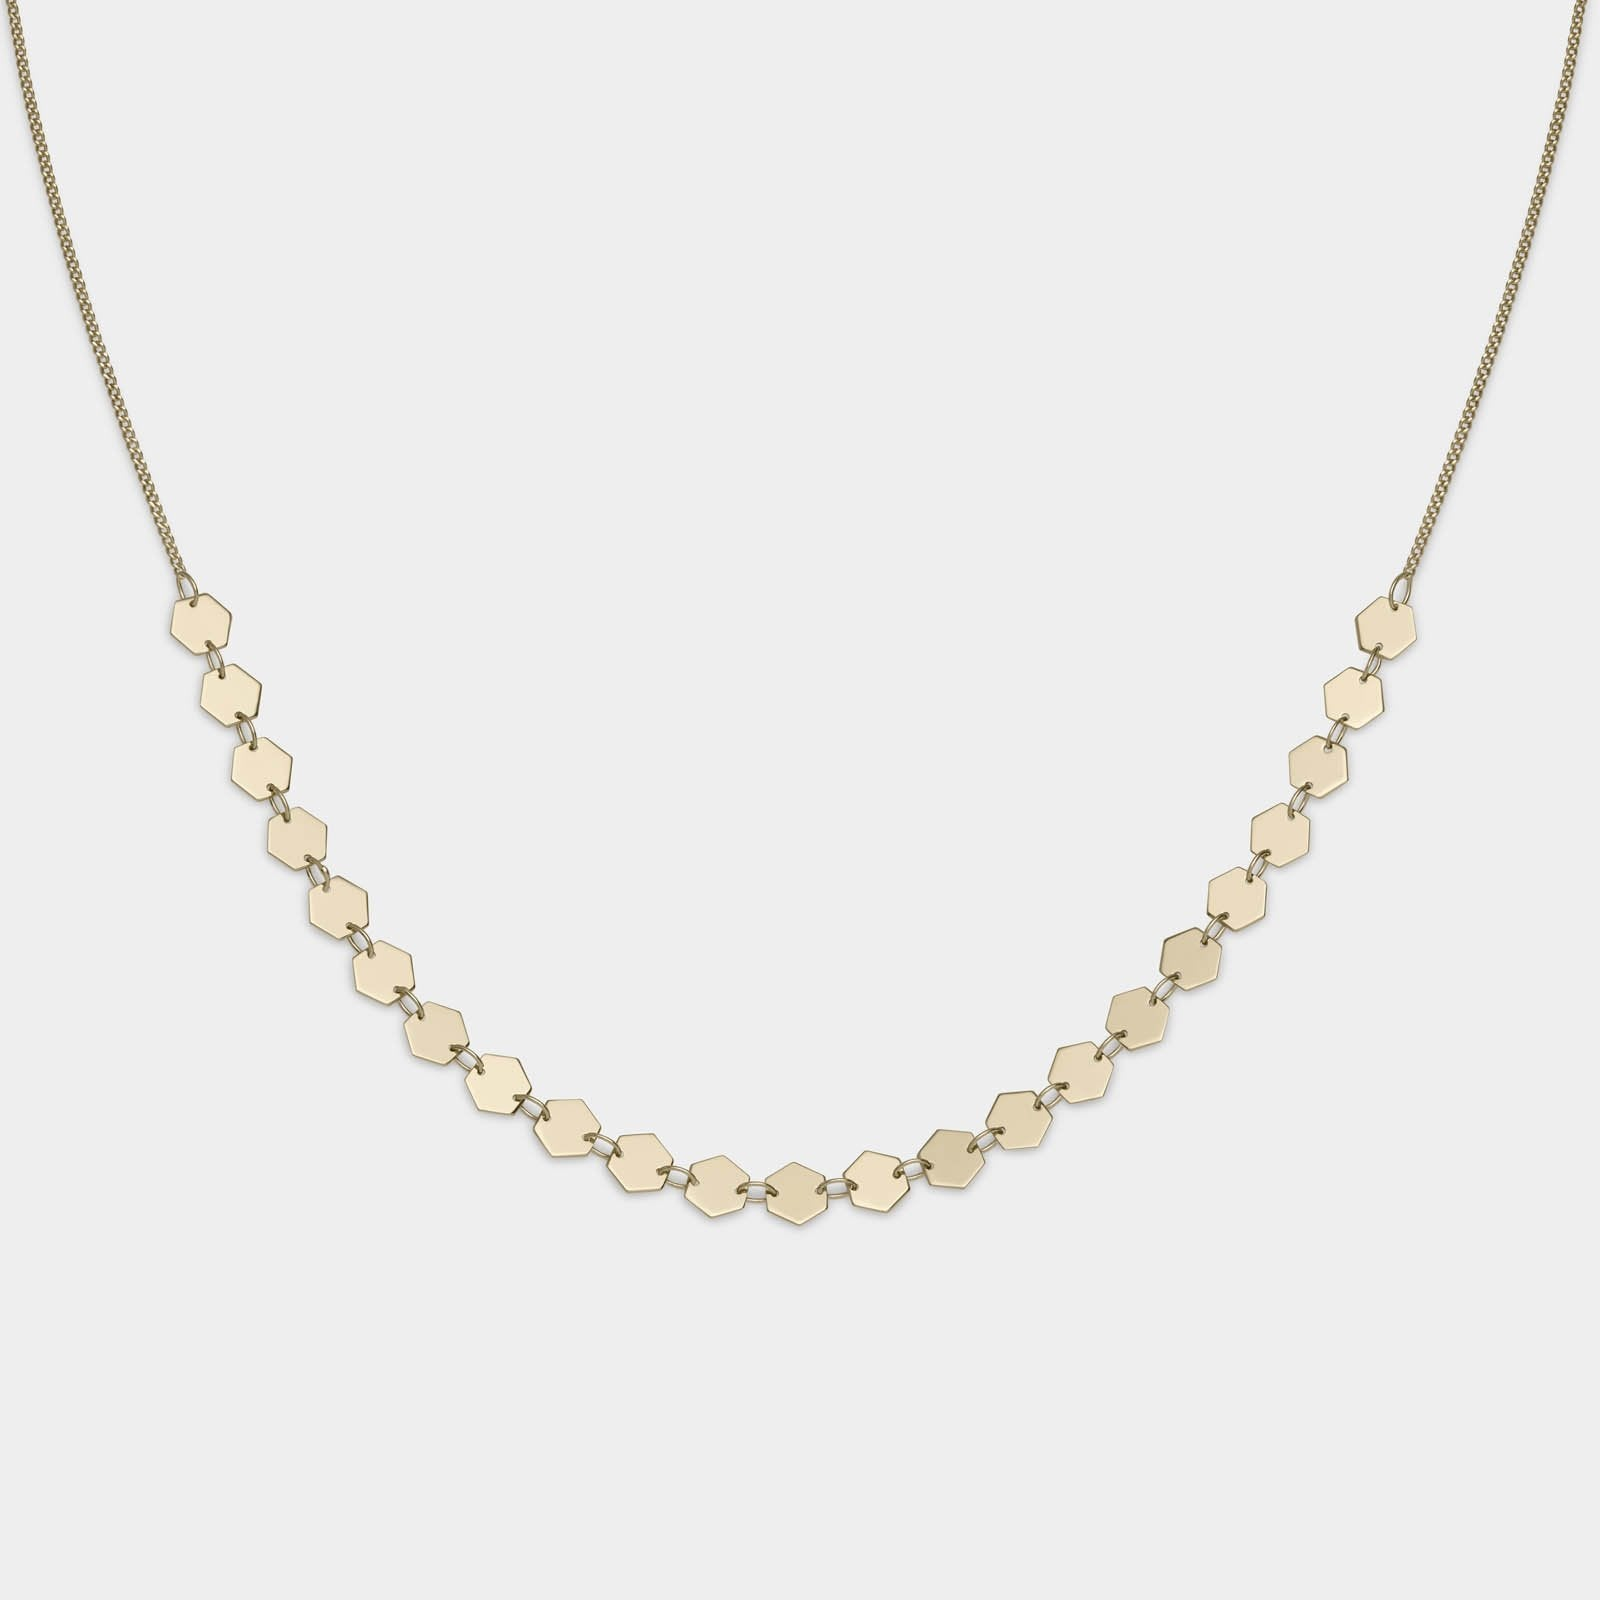 CLUSE Essentielle Gold All Hexagons Choker Necklace CLJ21003 - necklace